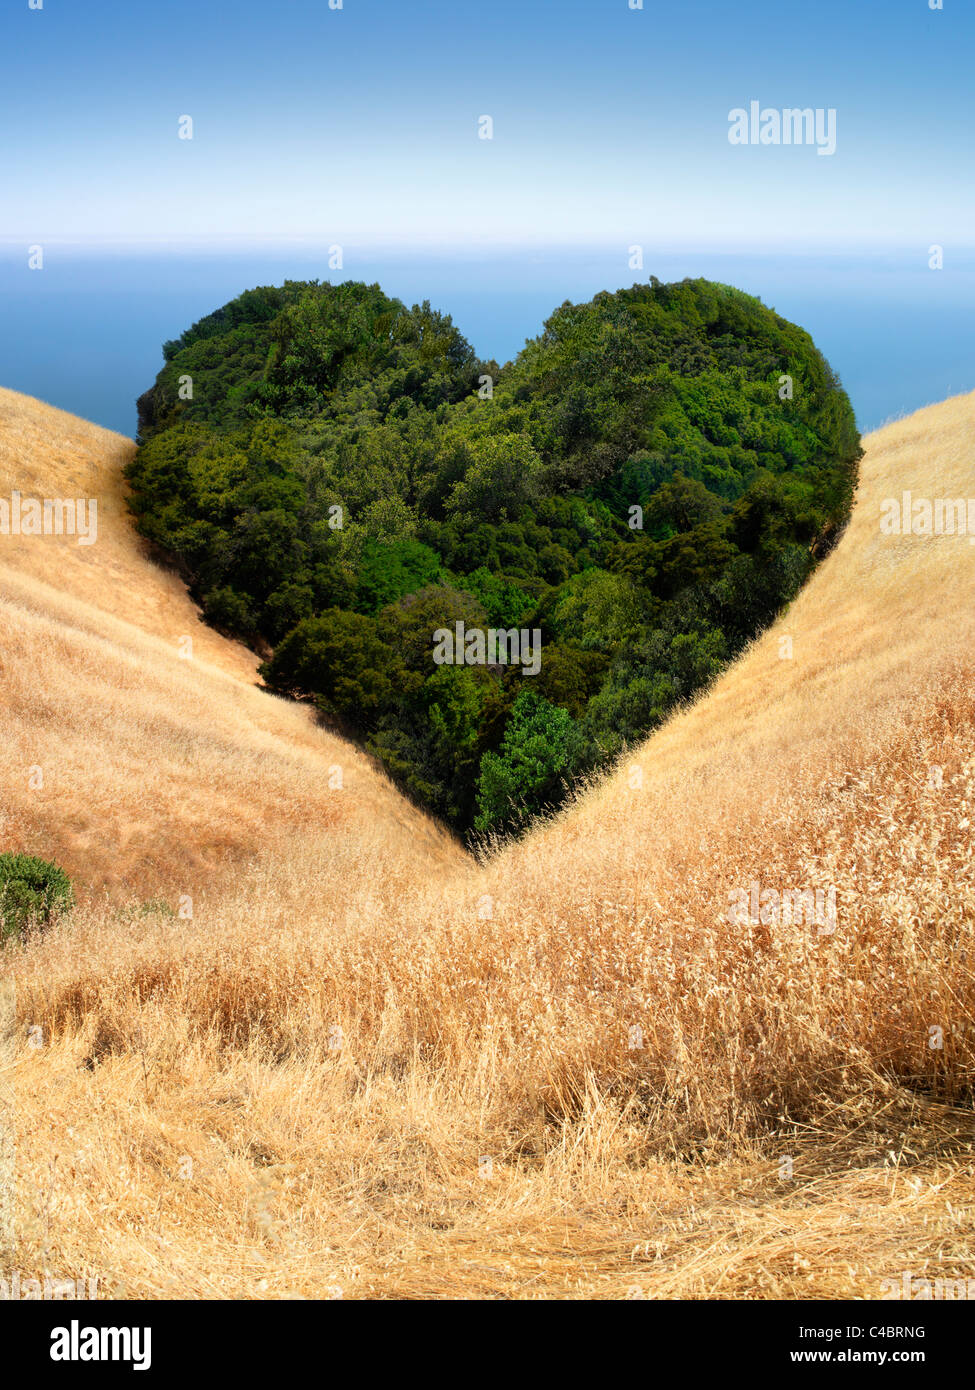 Landscape of trees in field that form the shape of a heart - Stock Image